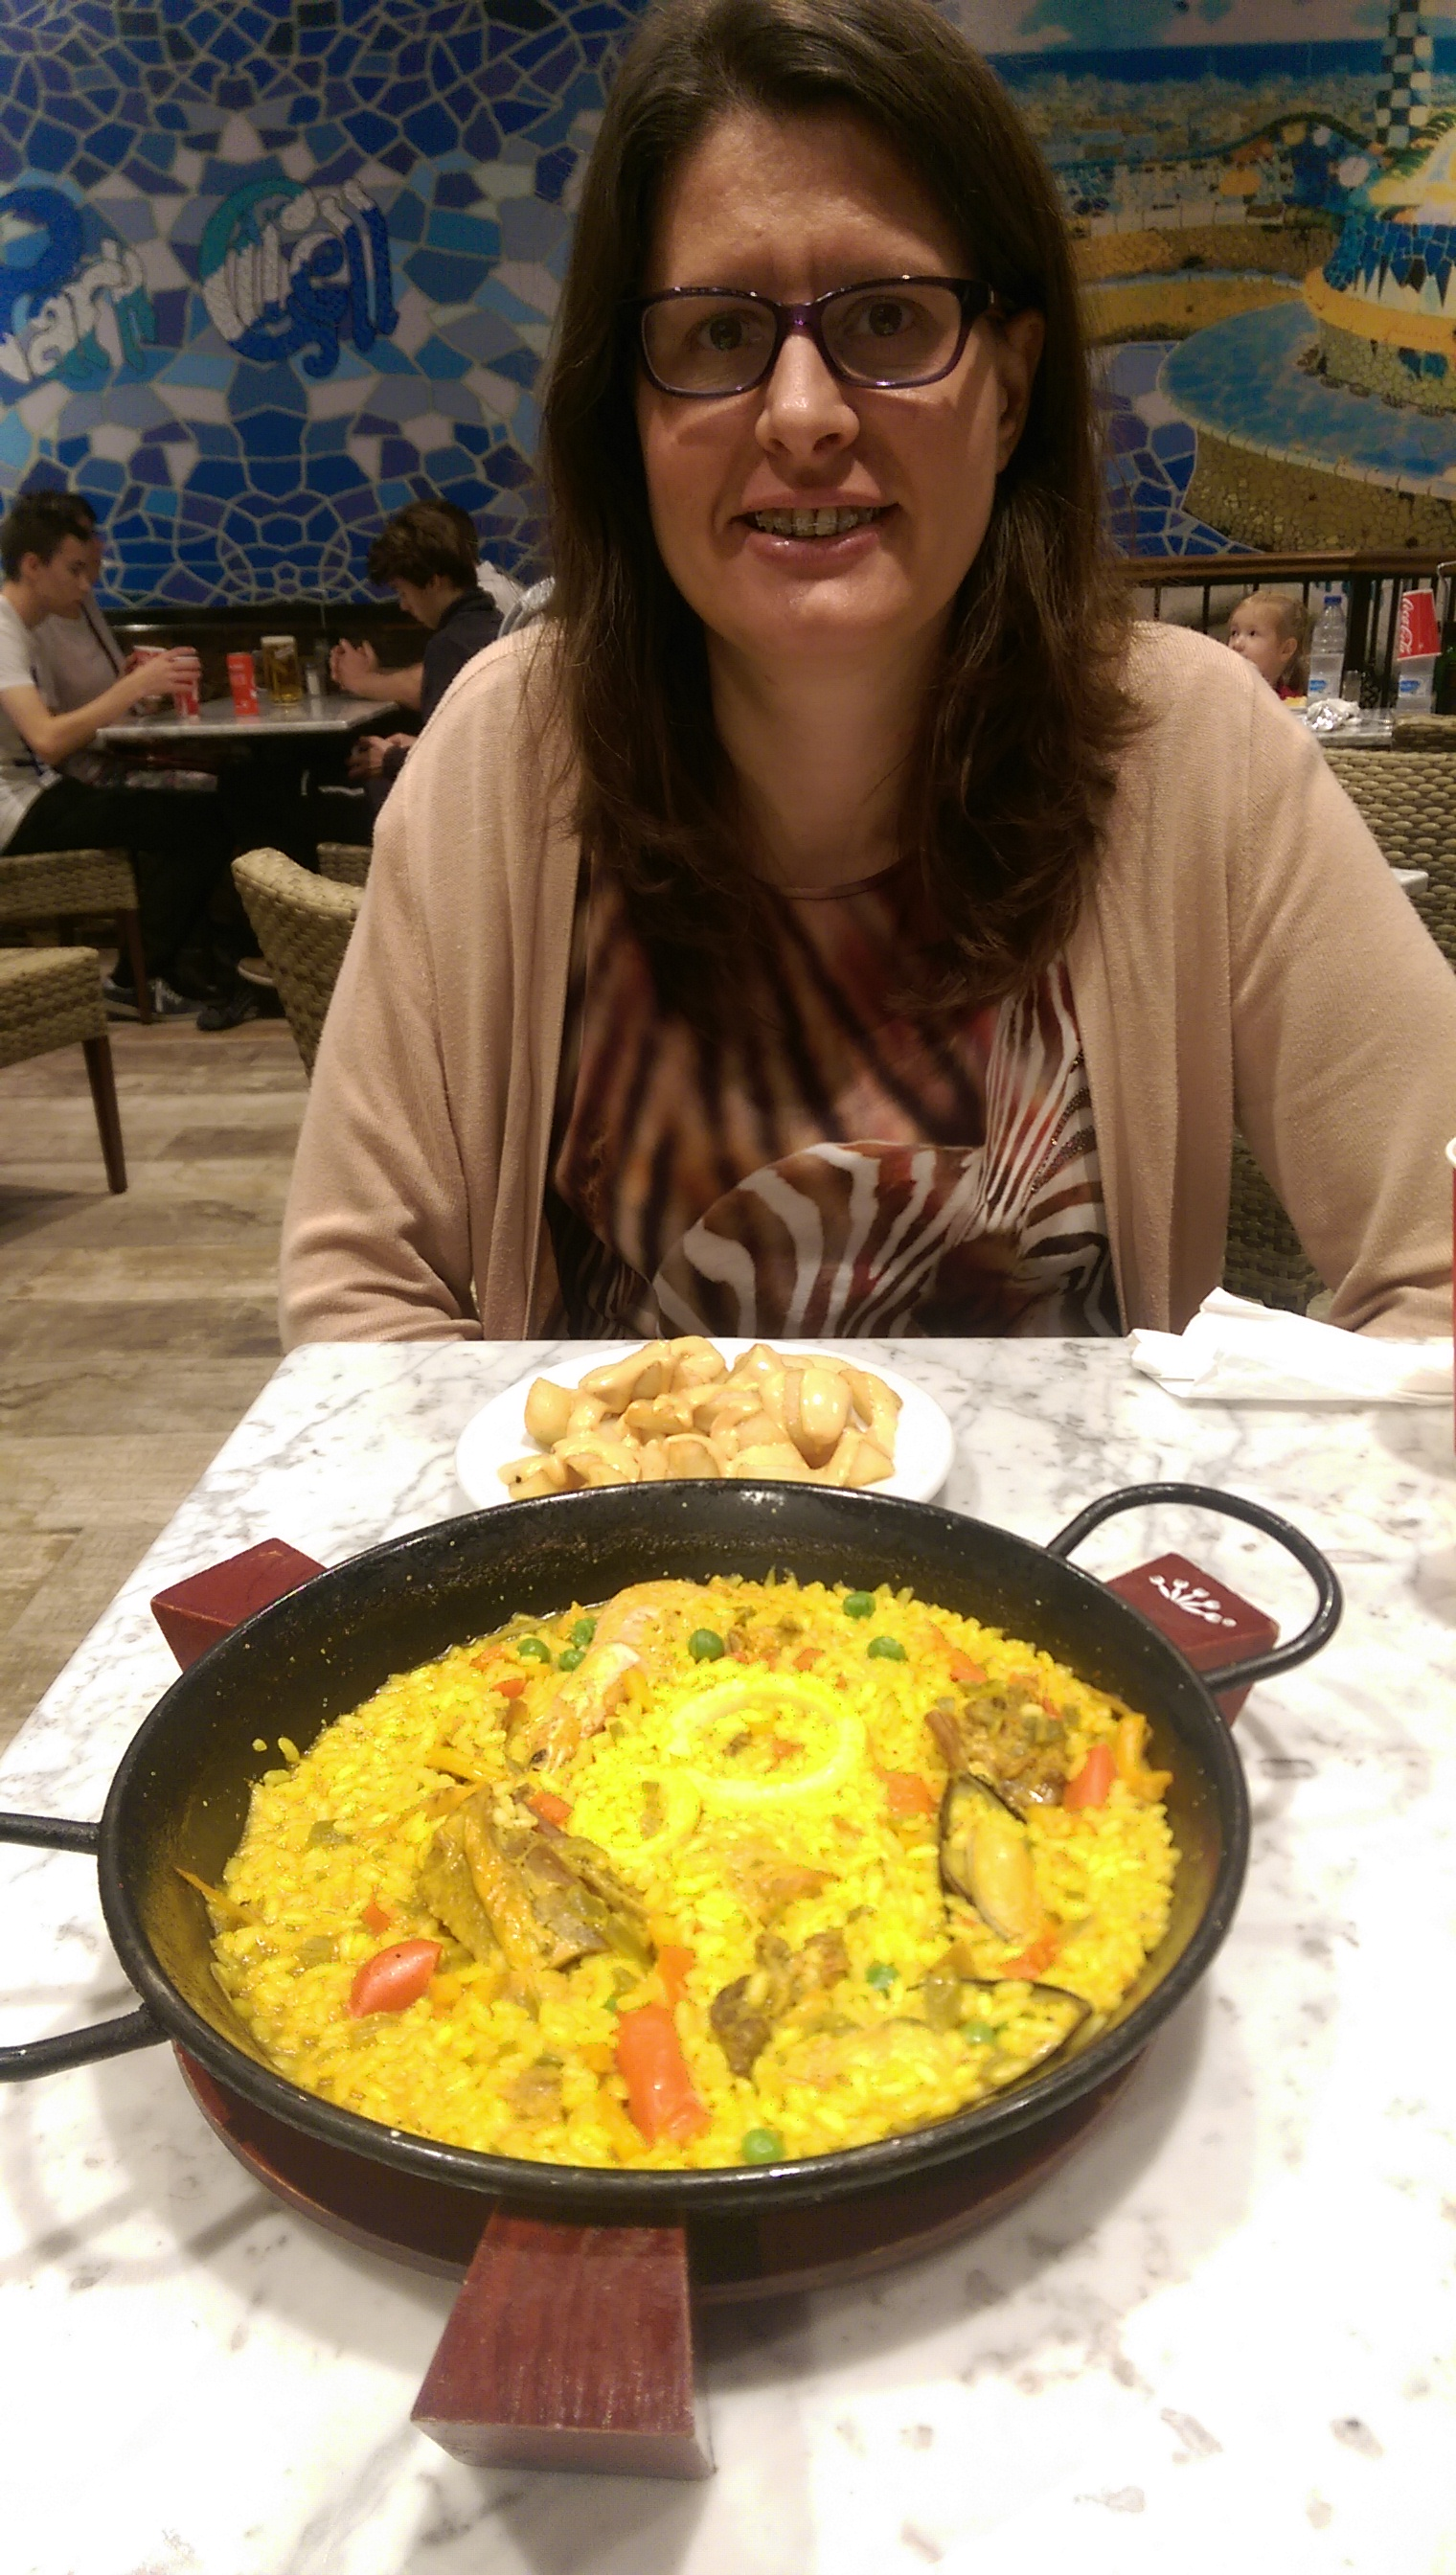 Amy and Paella and Patatas Bravas